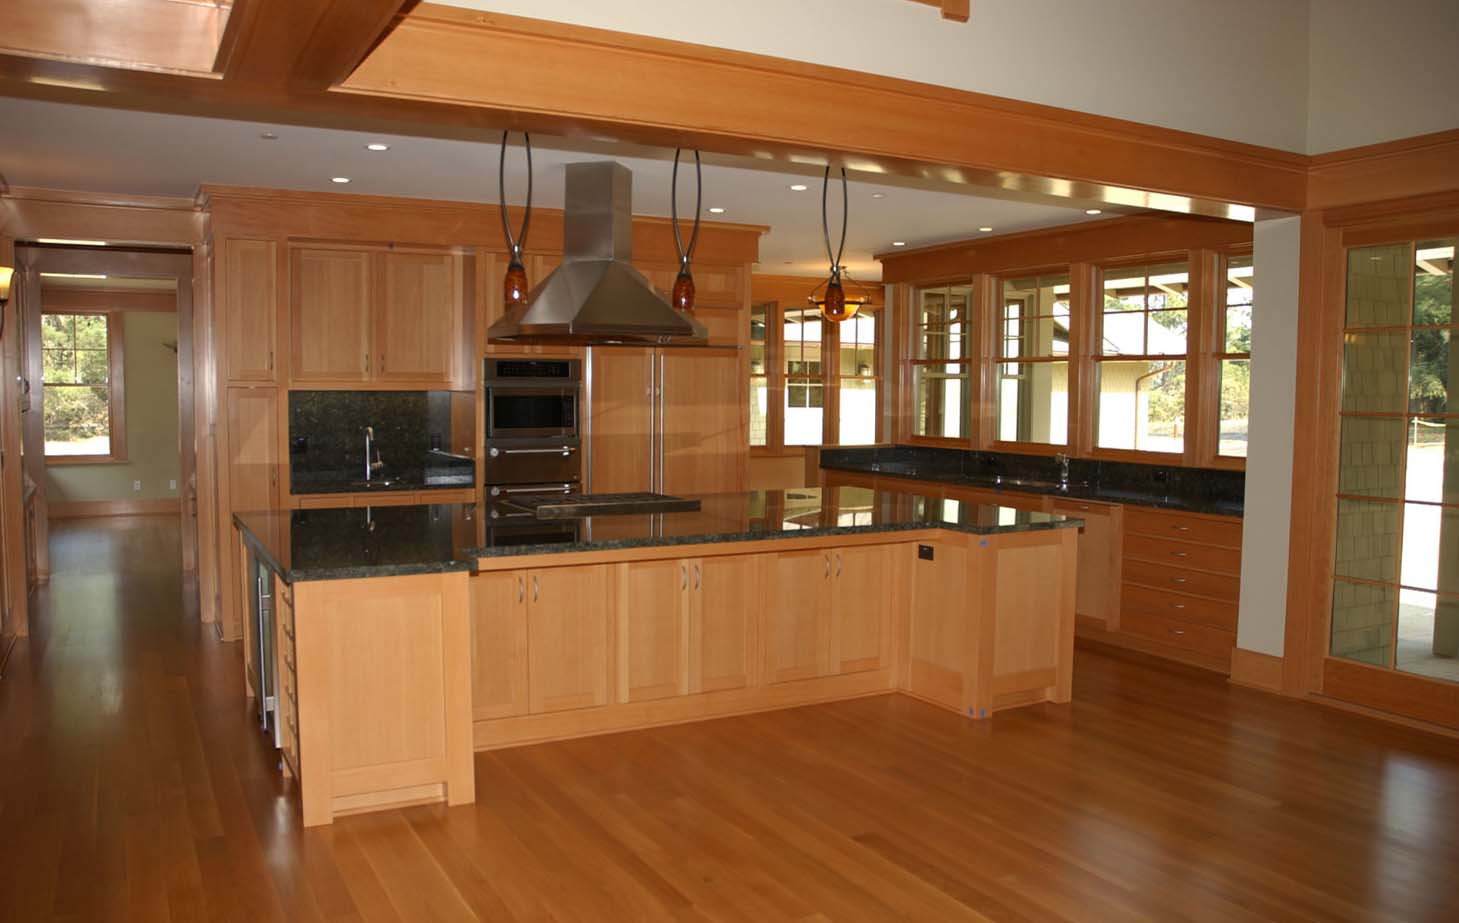 brown kitchen  Finish Carpentry and Woodworking by Ron Clegg